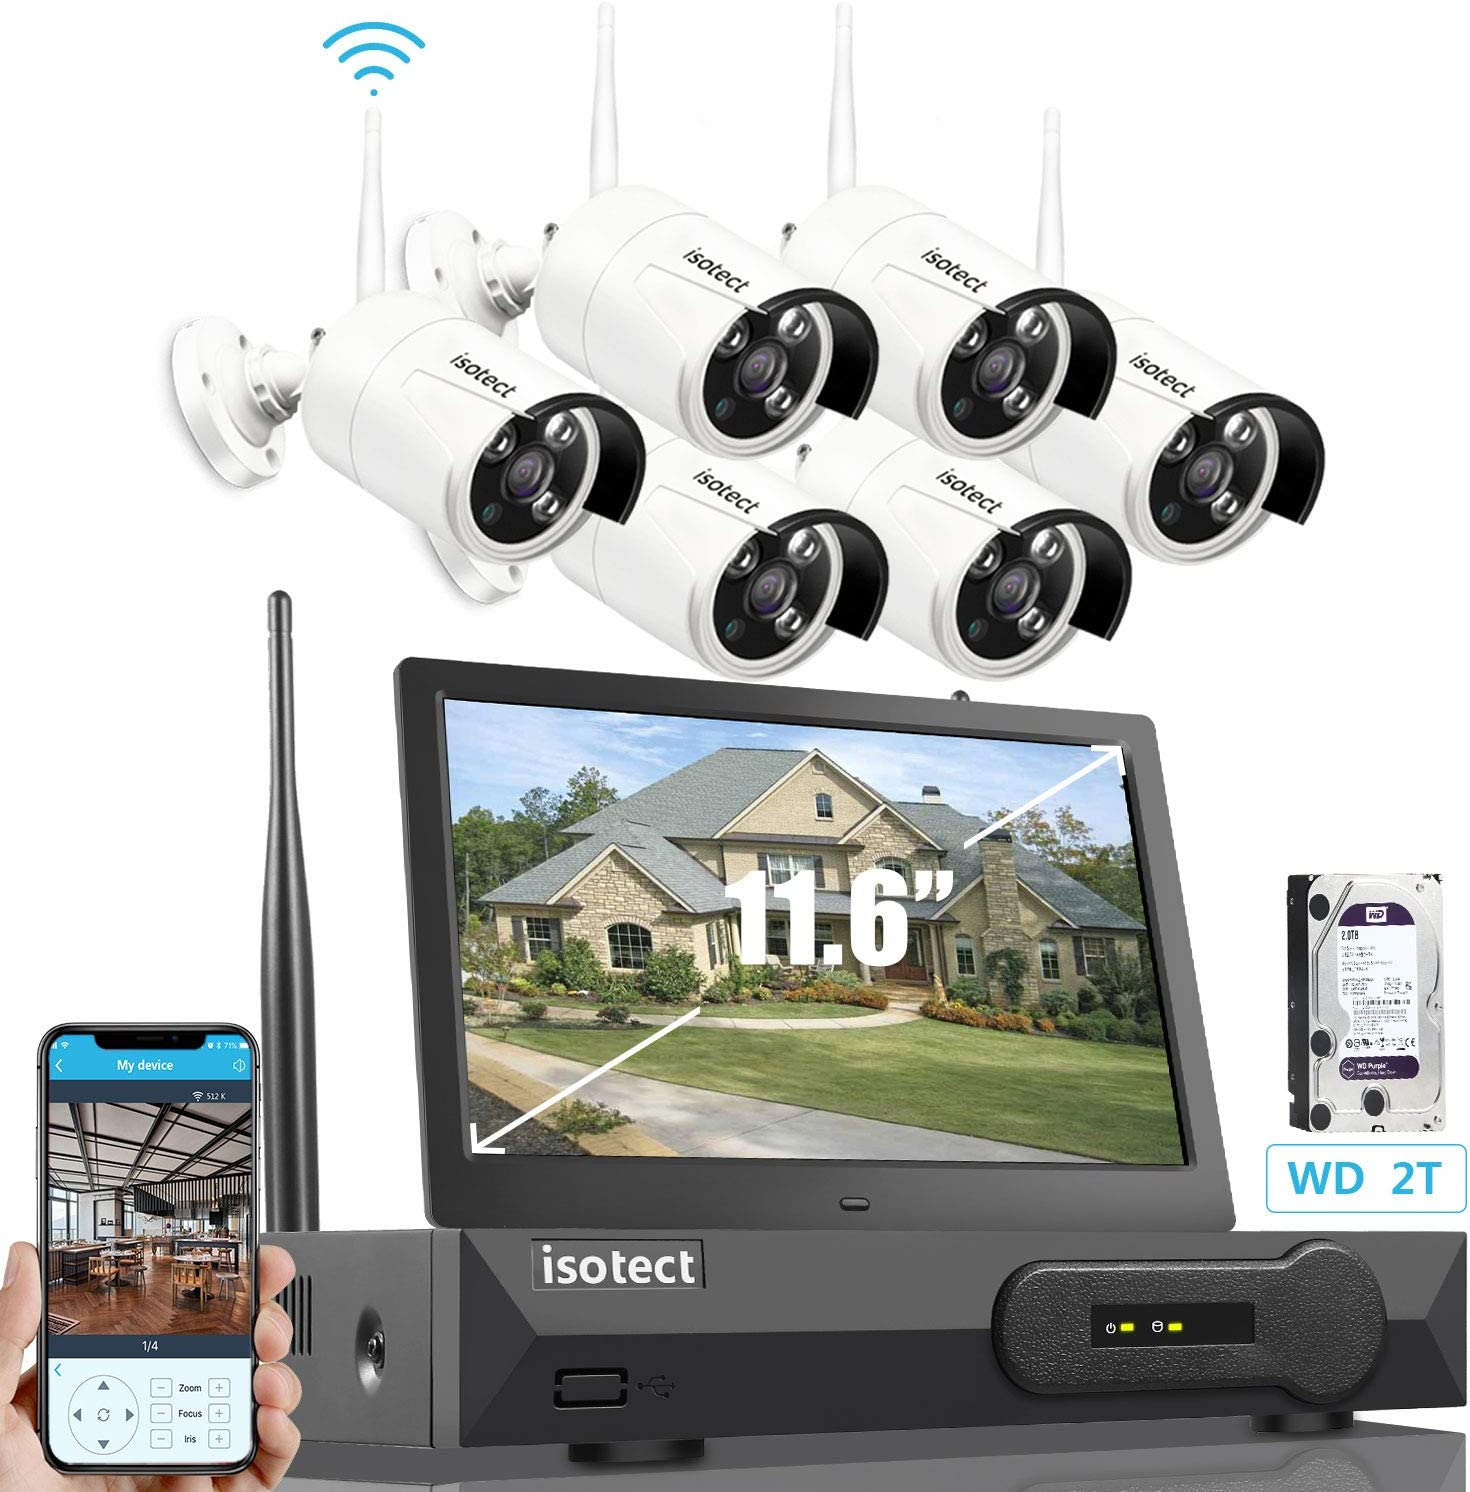 [Newest Strong Version]ISOTECT All in One with 11.6-inch Monitor Home Video Surveillance System, Wireless Security Camera System,8CH Full HD 1080P Security Camera System 6pcs 1080P IP Cameras, 2TB HDD